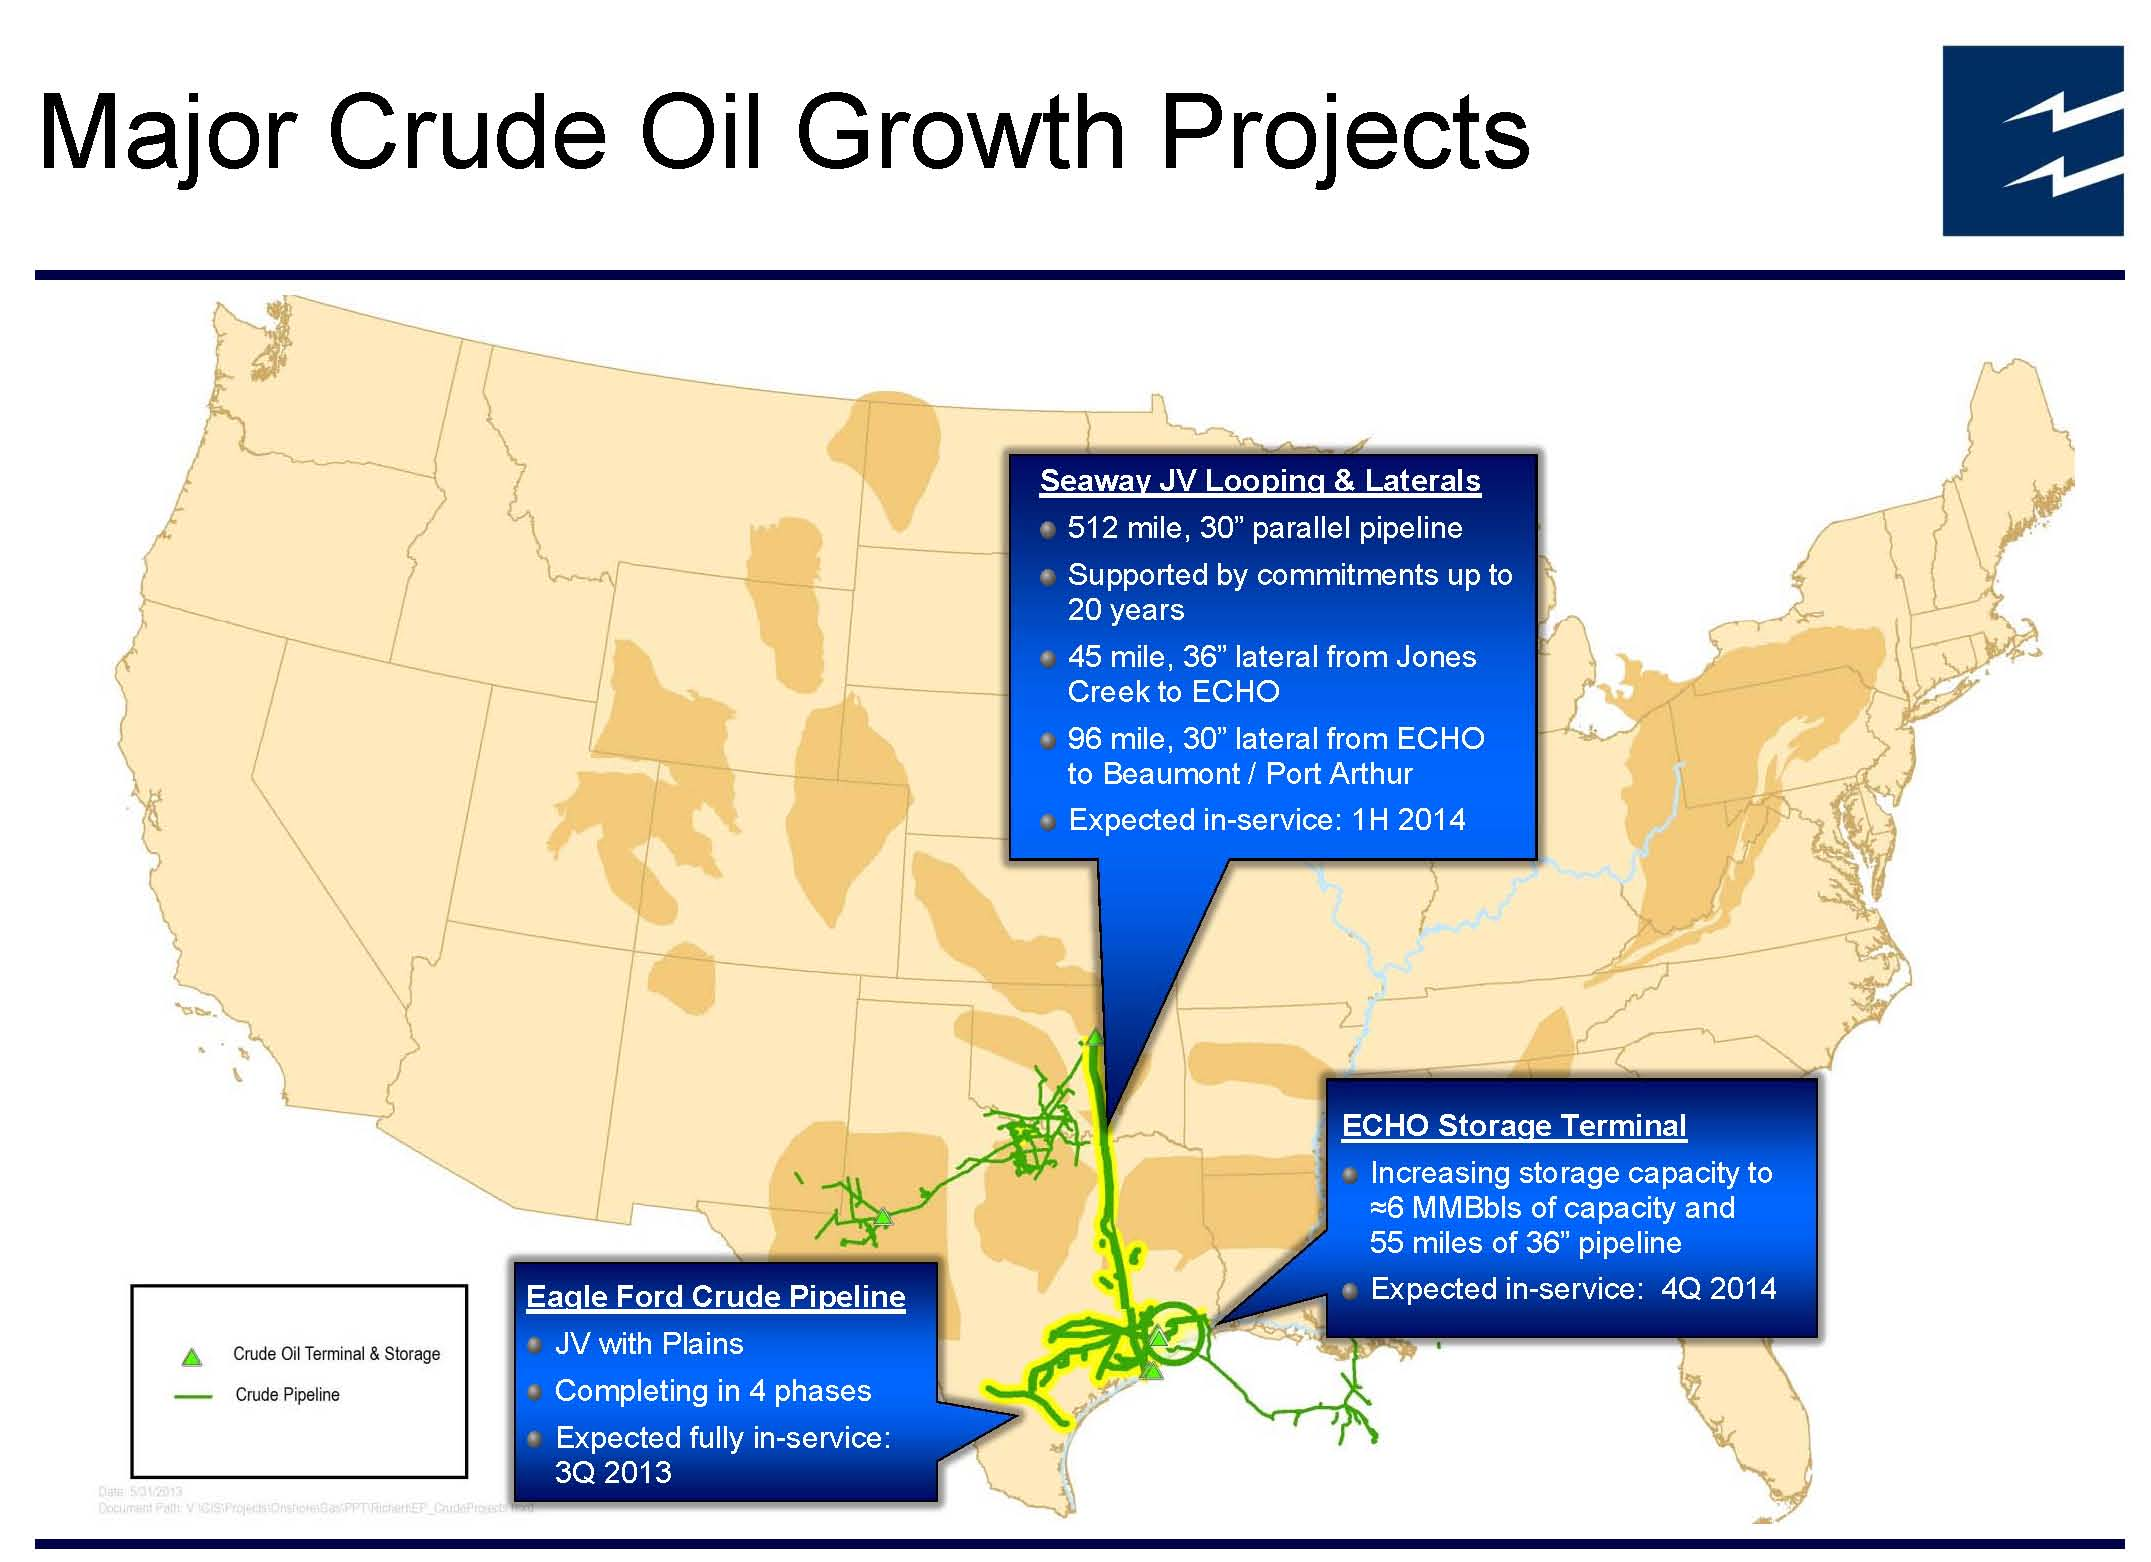 Enterprise to Offer Crude Oil for Export in Second WTI